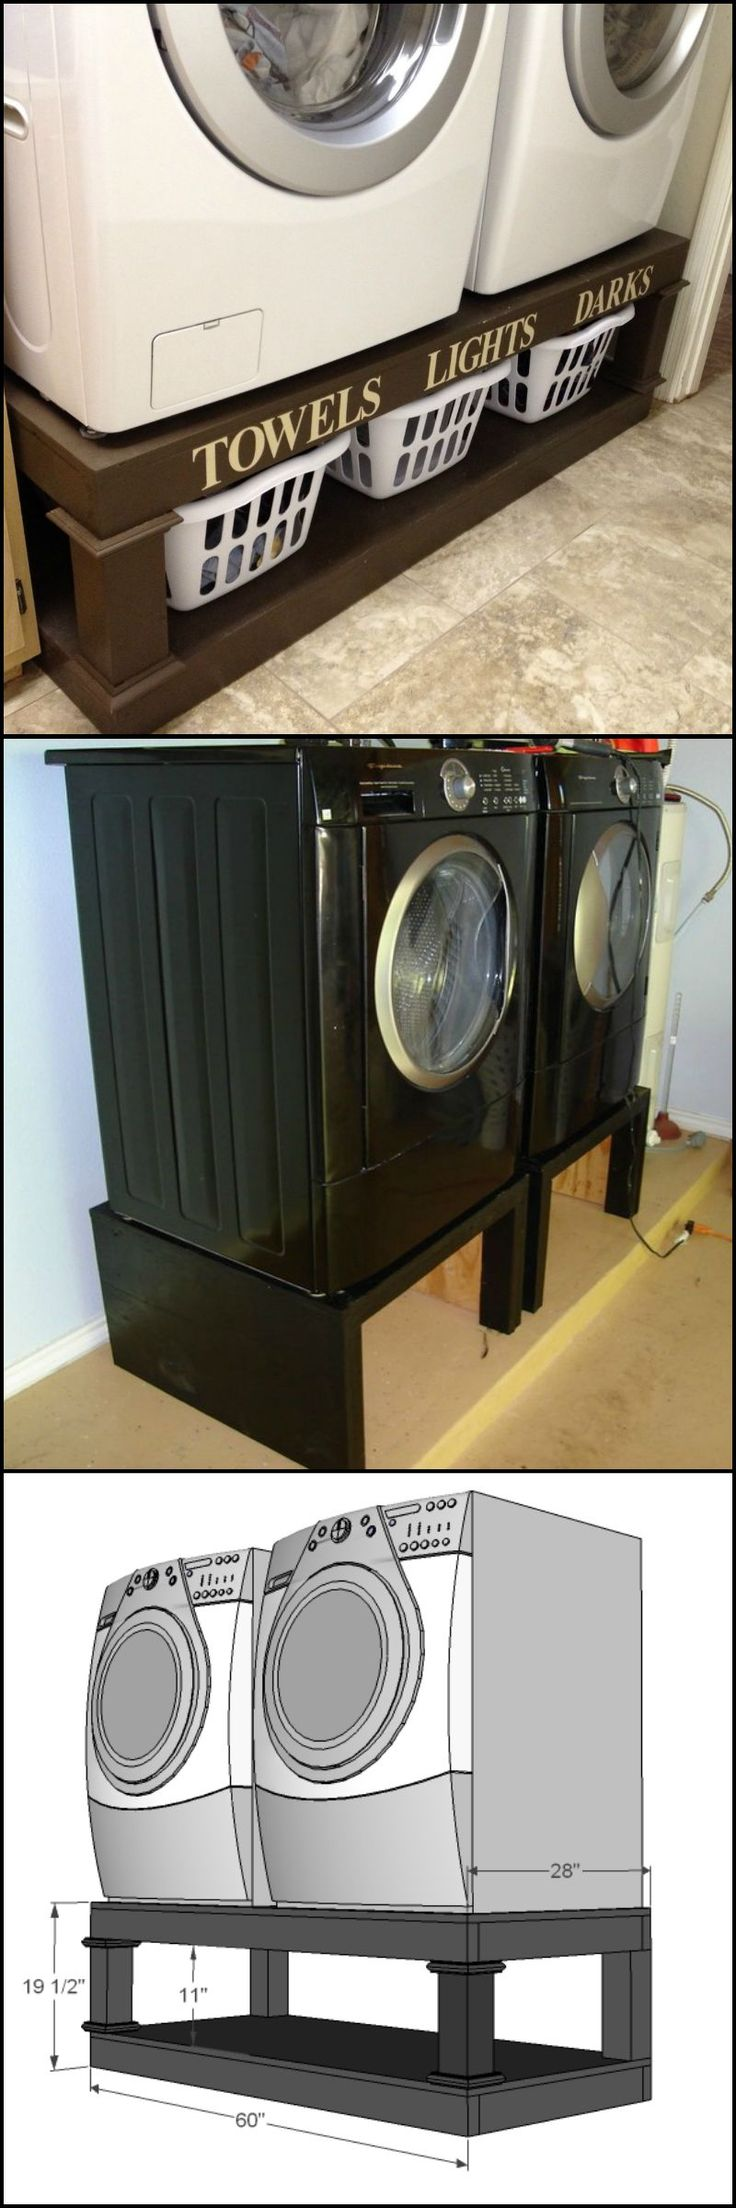 How To Build A Washing Machine And Dryer Pedestal  http://theownerbuildernetwork.co/0gl3  A pedestal or stand for your dryer or washer is a perfect way to create storage space, and to easily access front loading washing machines and dryer.  This pedestal project will bring your machines up to a more ergonomic height while creating storage space underneath for washing baskets or other necessities. And it's a project that won't break the bank.